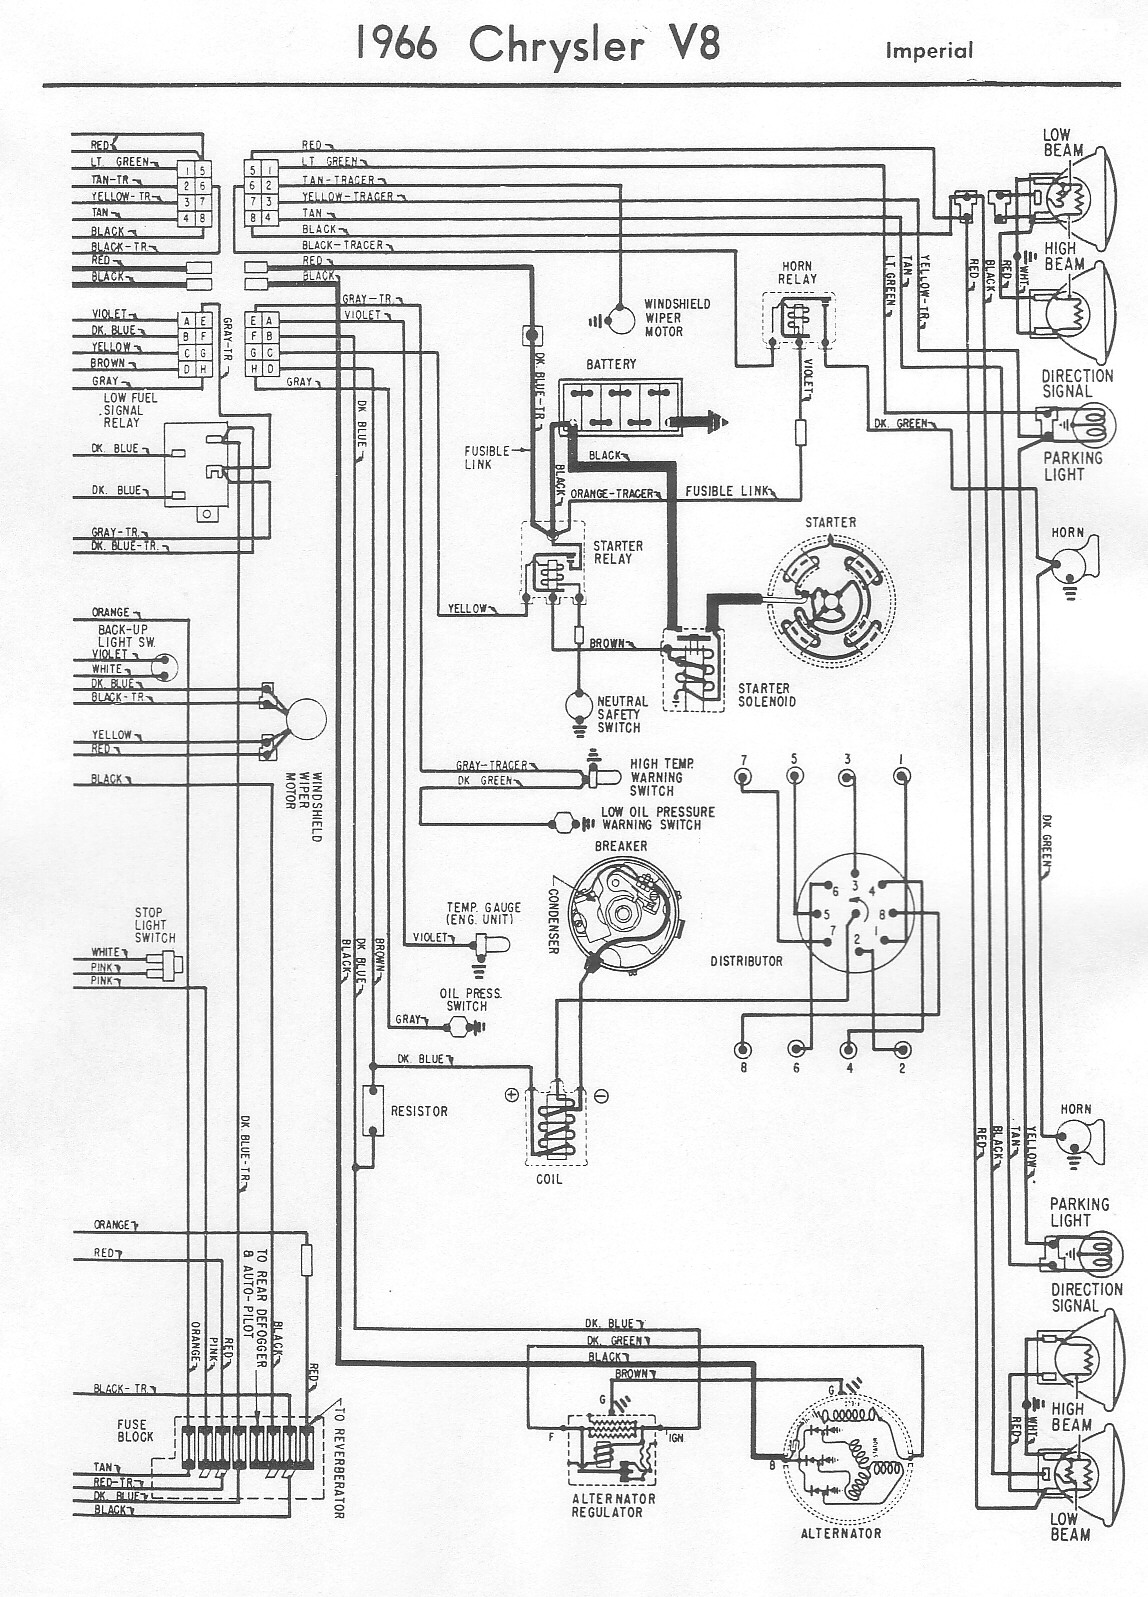 1973 plymouth wiring diagrams wiring library rh 11 mml partners de turn signal relay wiring diagram turn signal relay wiring diagram [ 1148 x 1597 Pixel ]